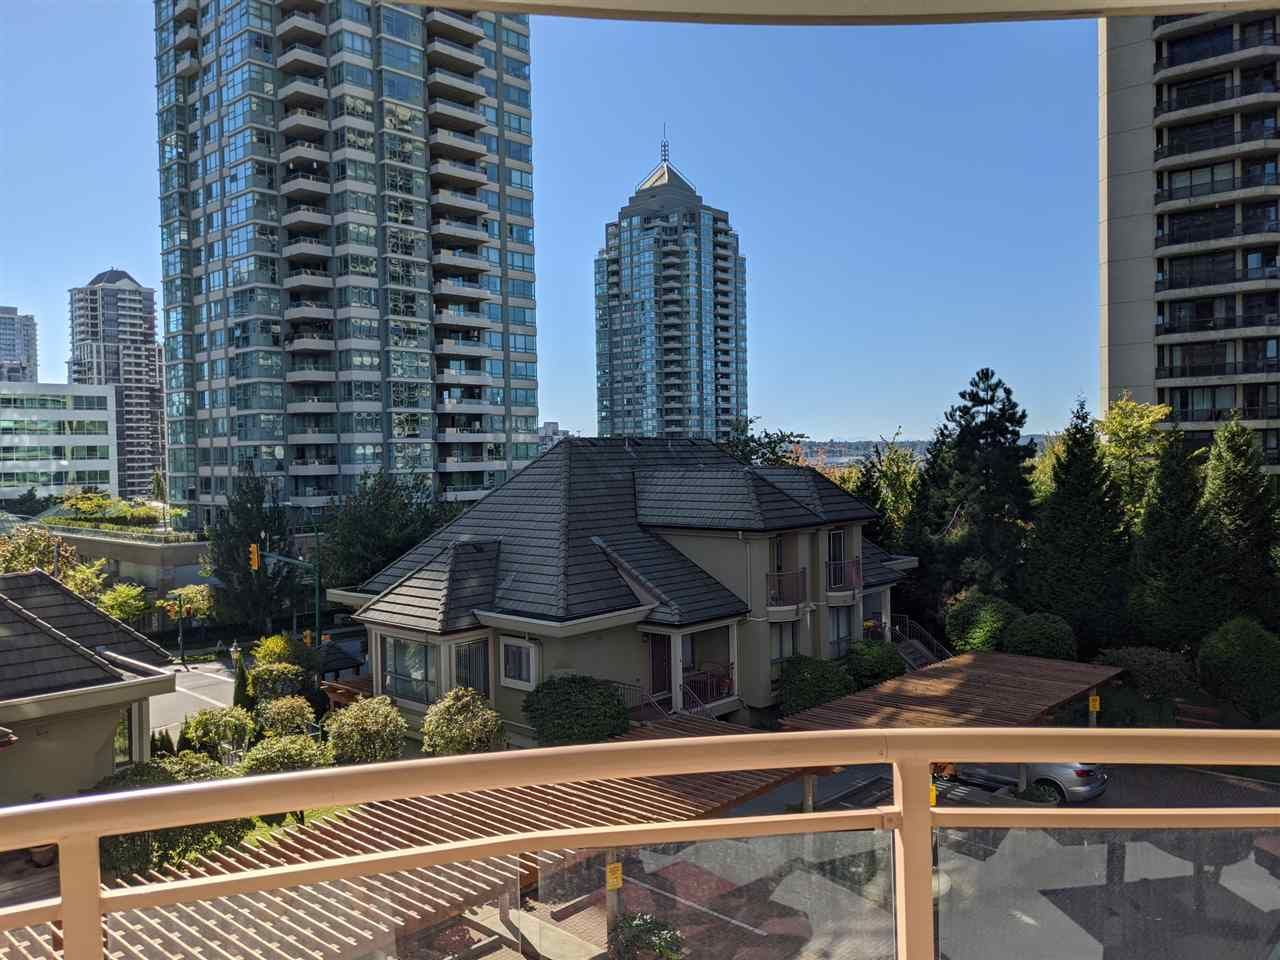 """Main Photo: 305 4425 HALIFAX Street in Burnaby: Brentwood Park Condo for sale in """"POLARIS"""" (Burnaby North)  : MLS®# R2503182"""